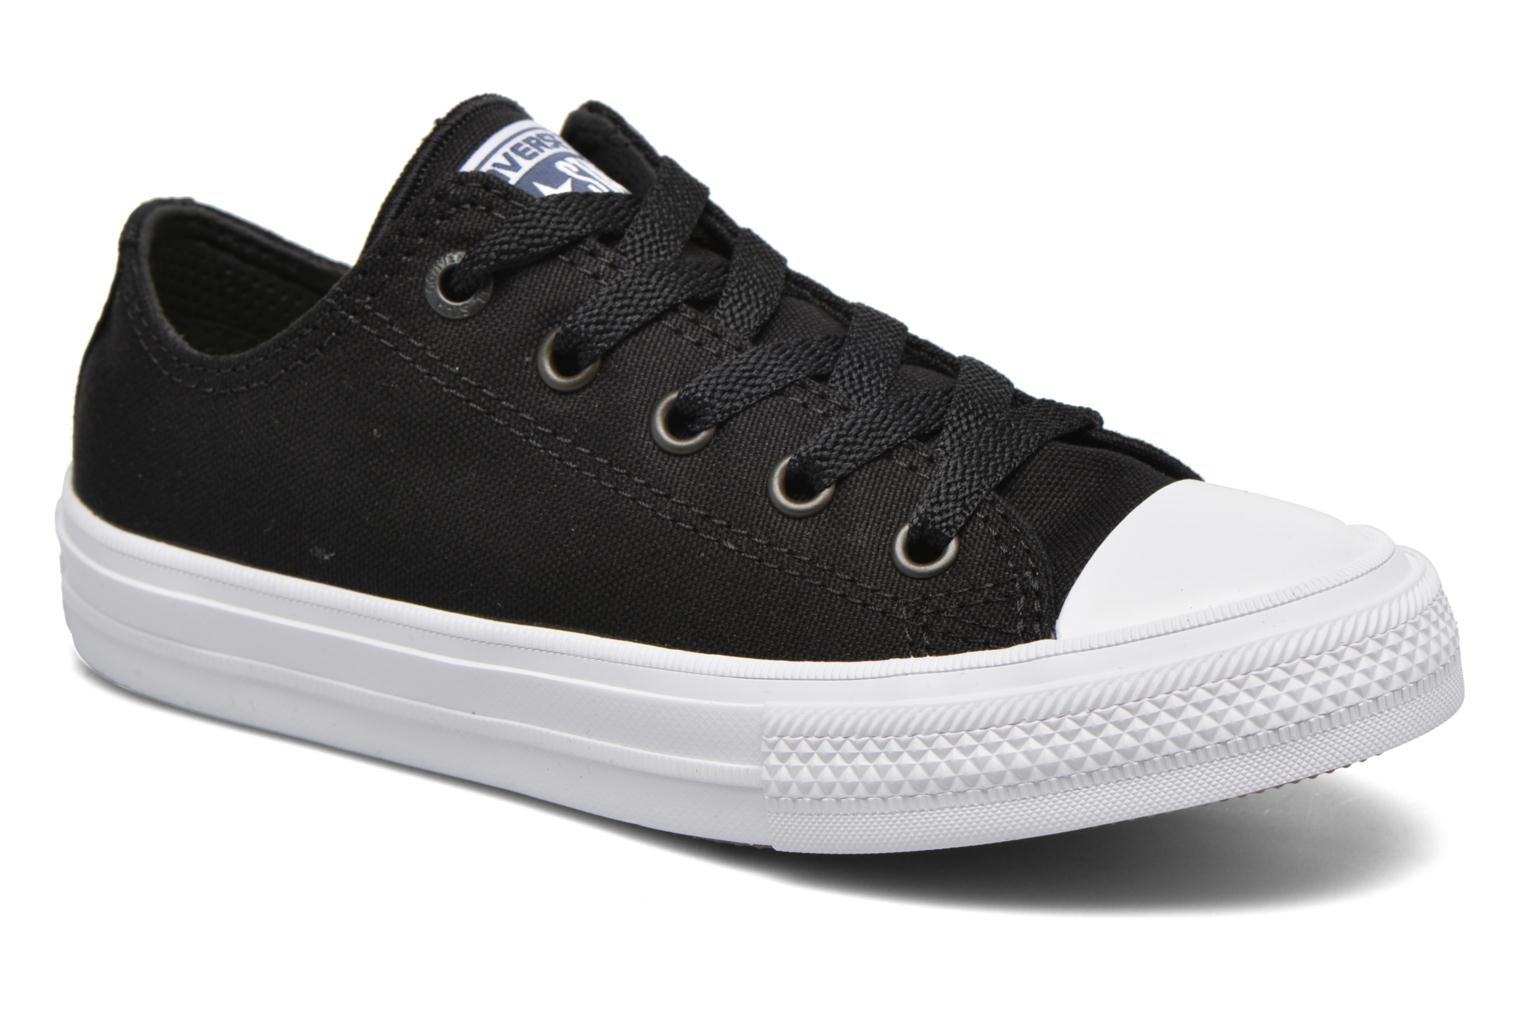 Chuck Taylor All Star II Hi Black white navy